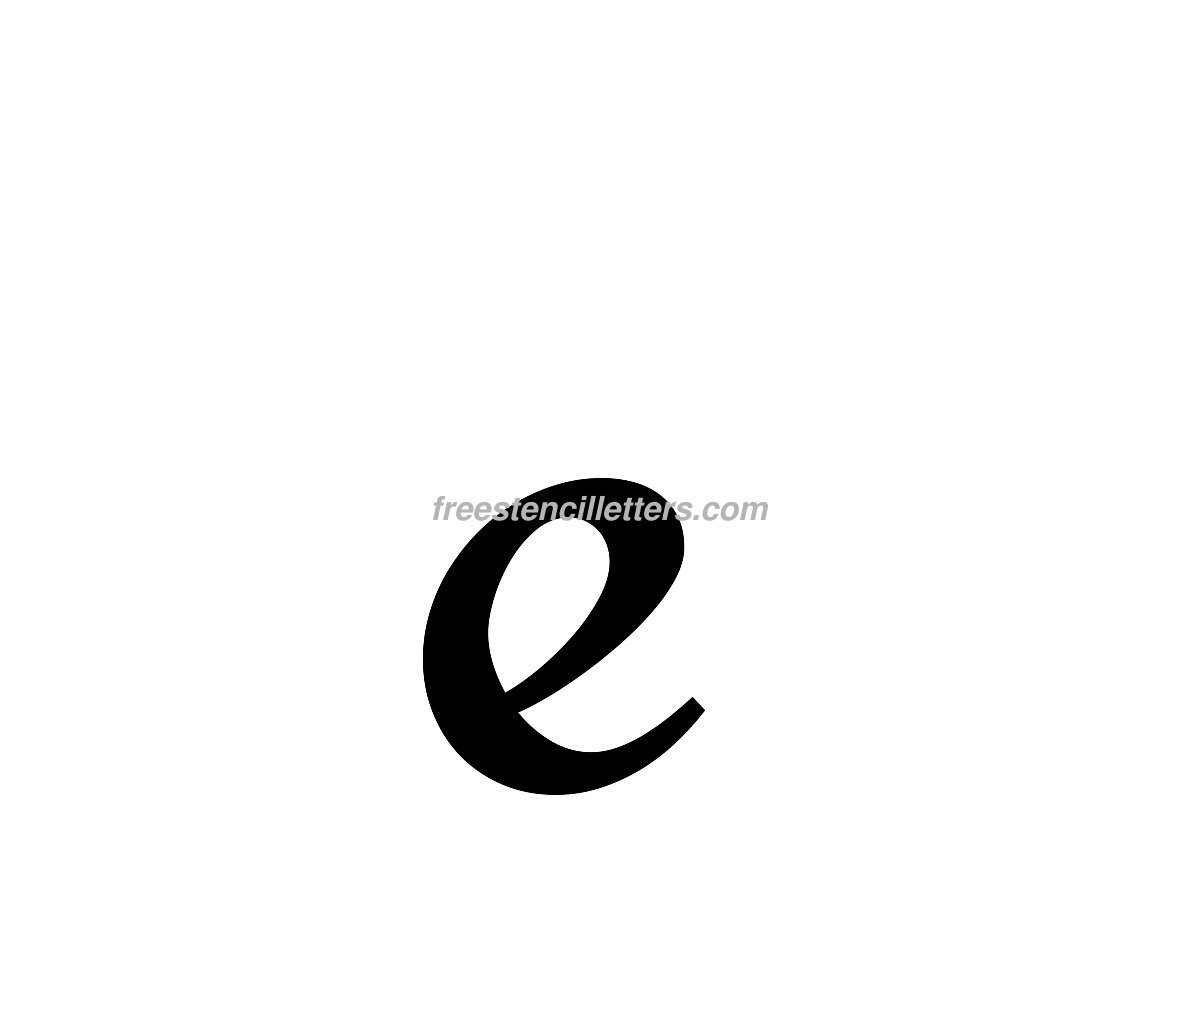 List Of Synonyms And Antonyms Of The Word Lowercase E